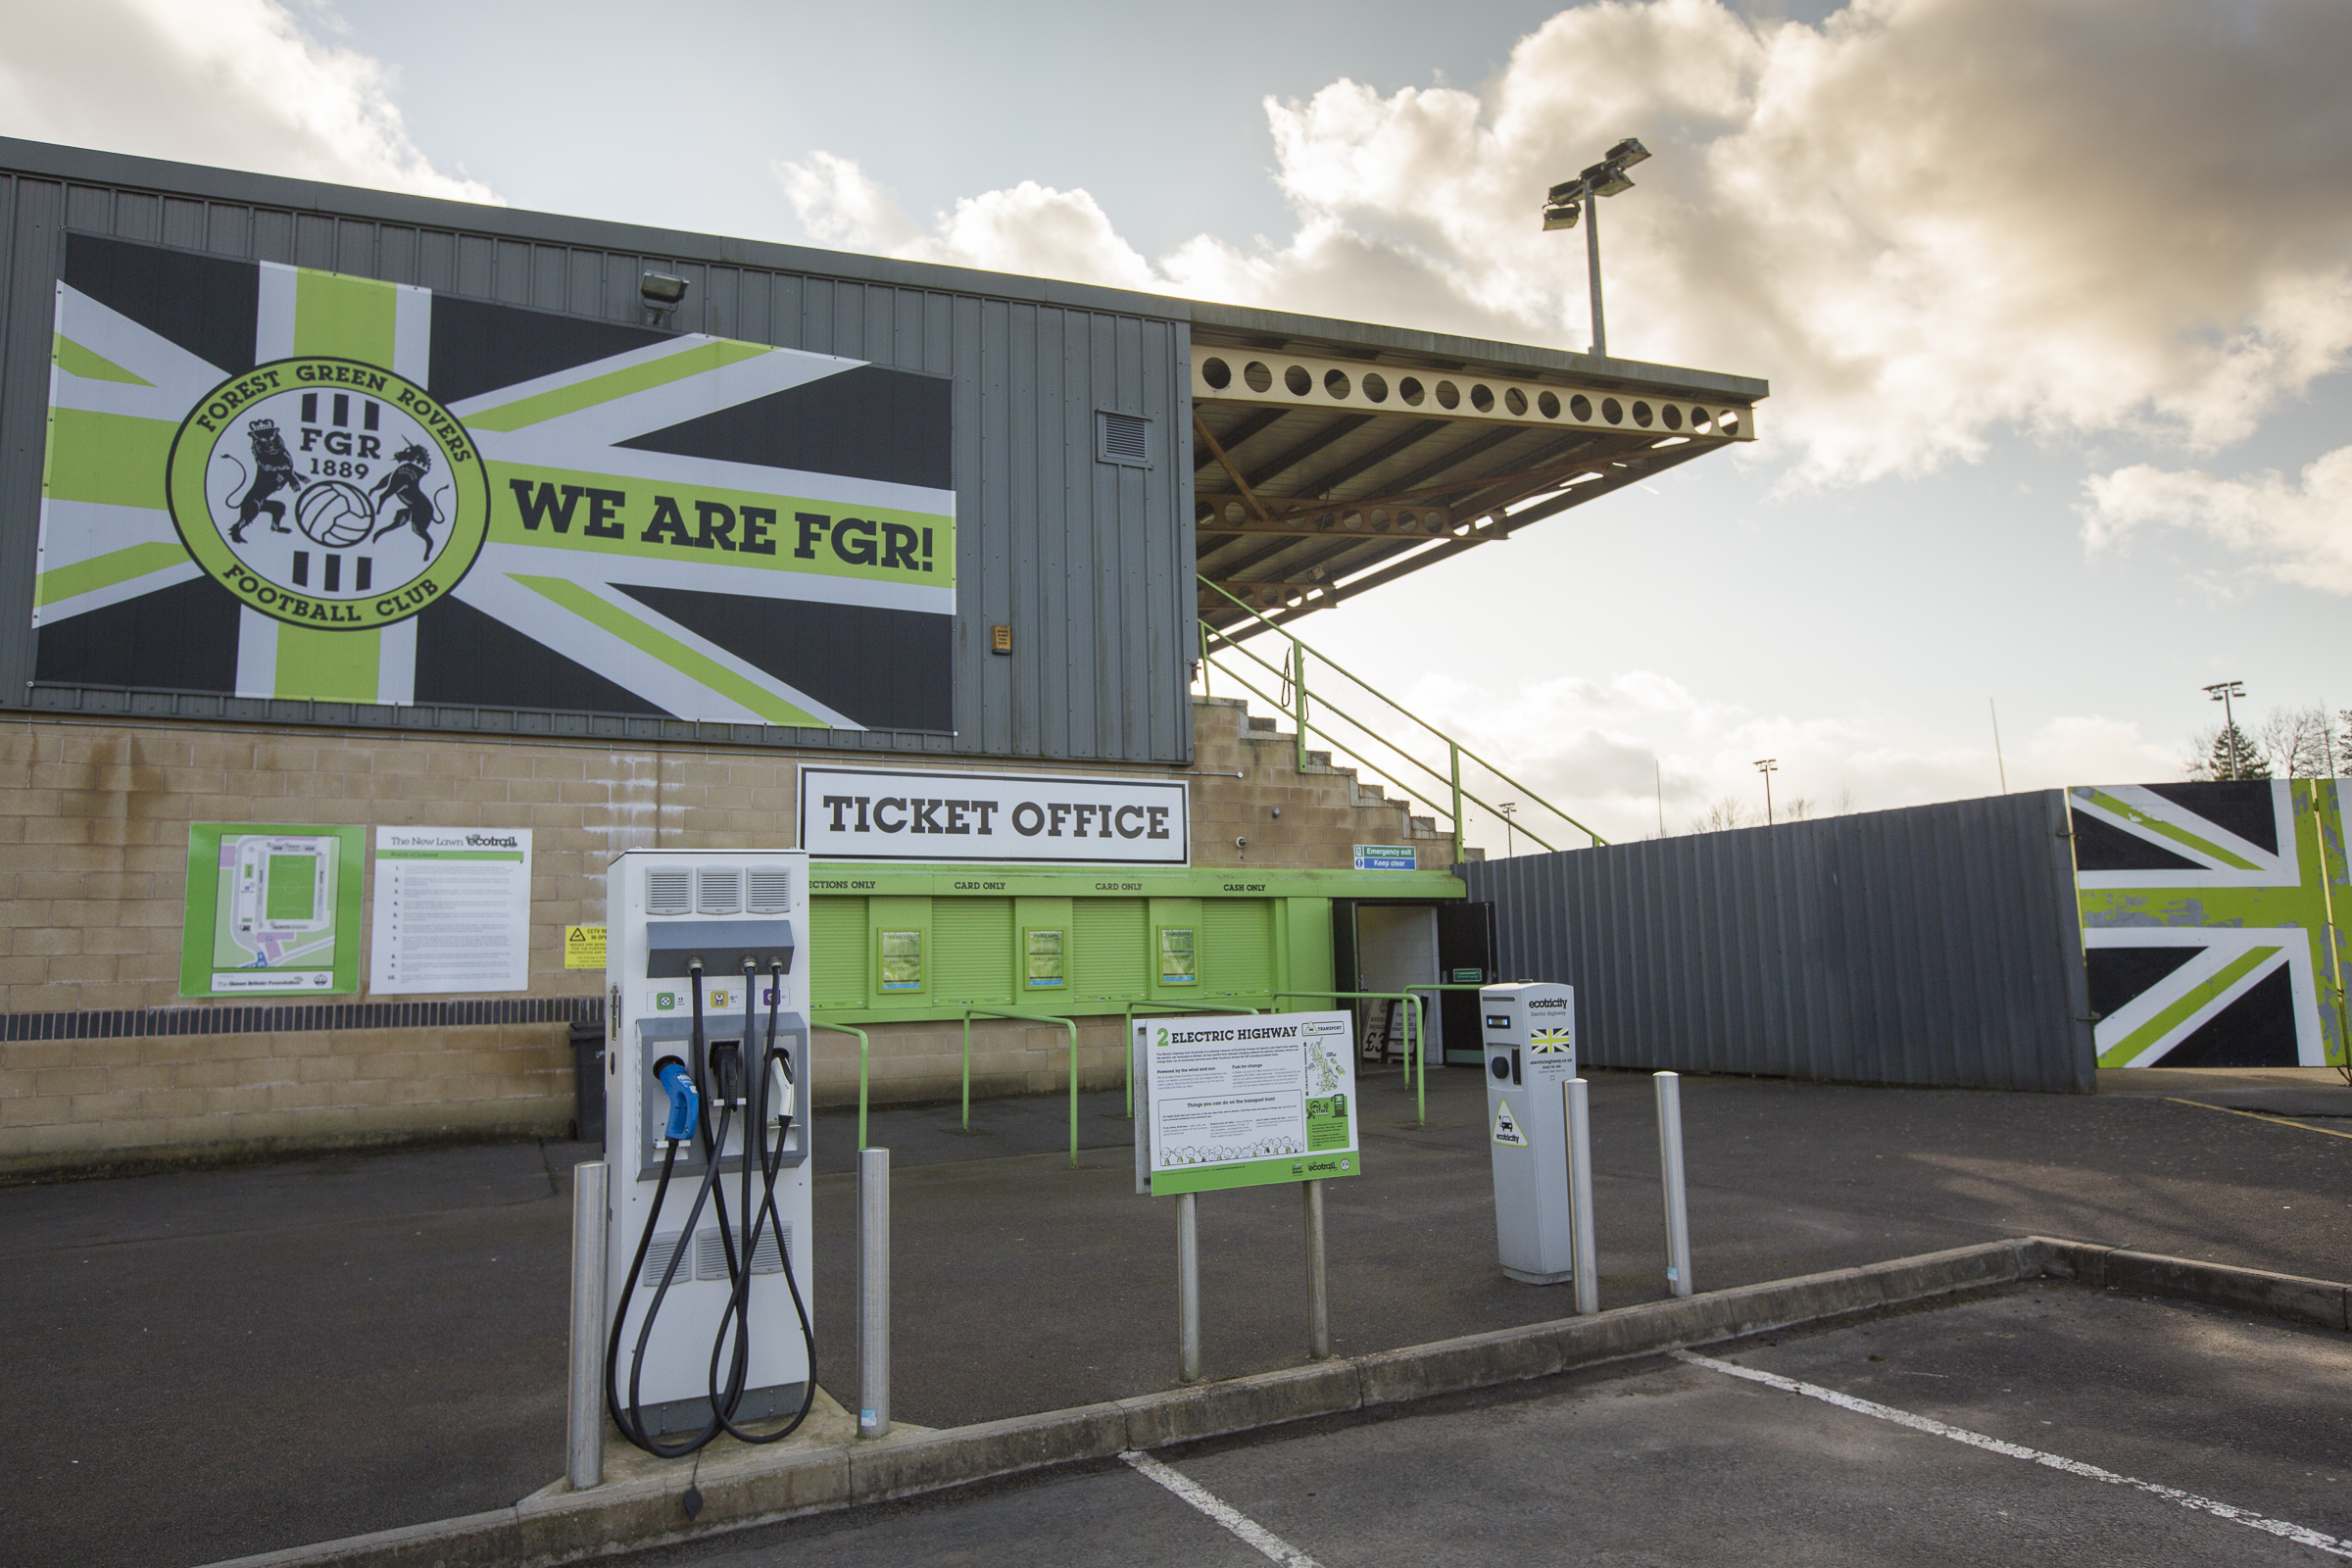 Electric vehicle charging points, Forest Green stadium